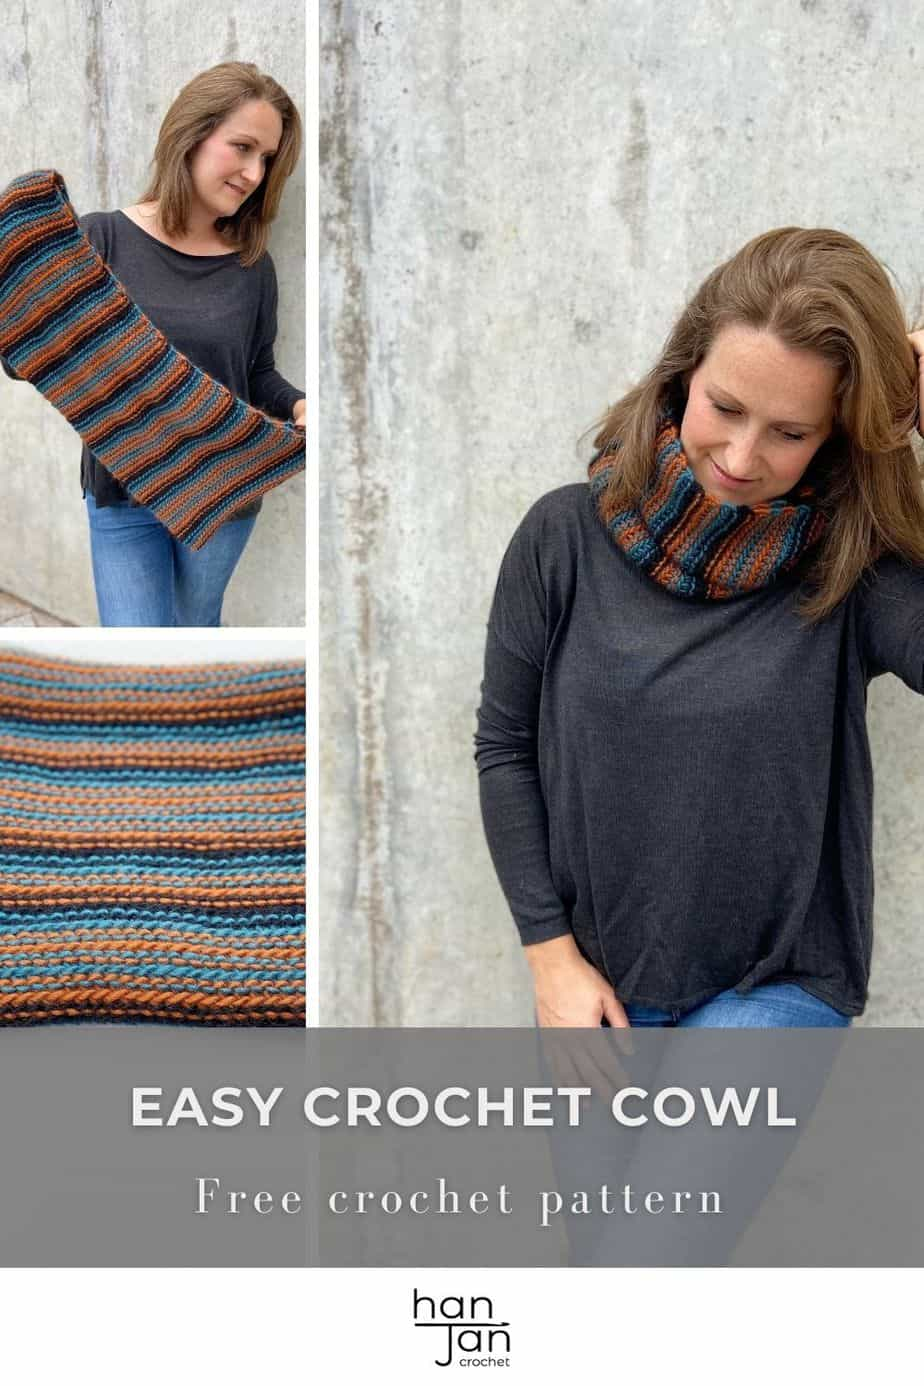 images showing striped chunky crochet cowl pattern in gender neutral colours